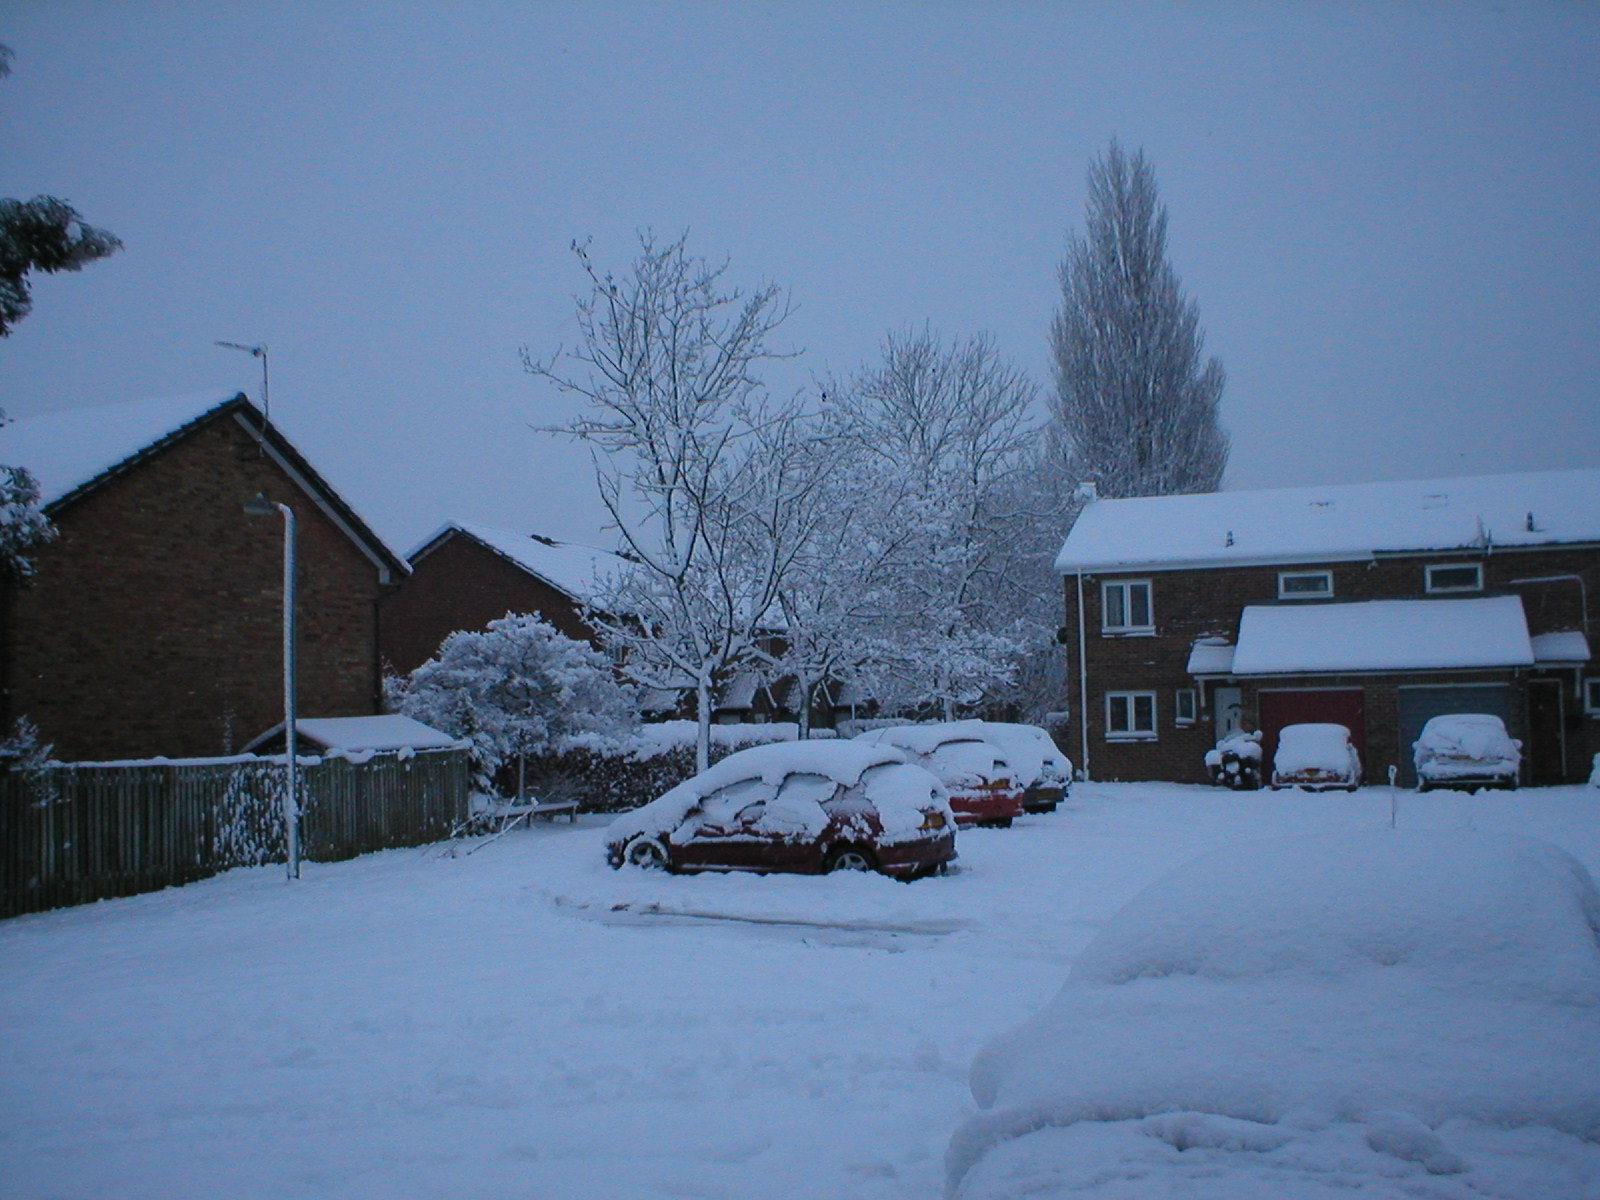 My car becoming a bit of a snow drift in the #uksnow.